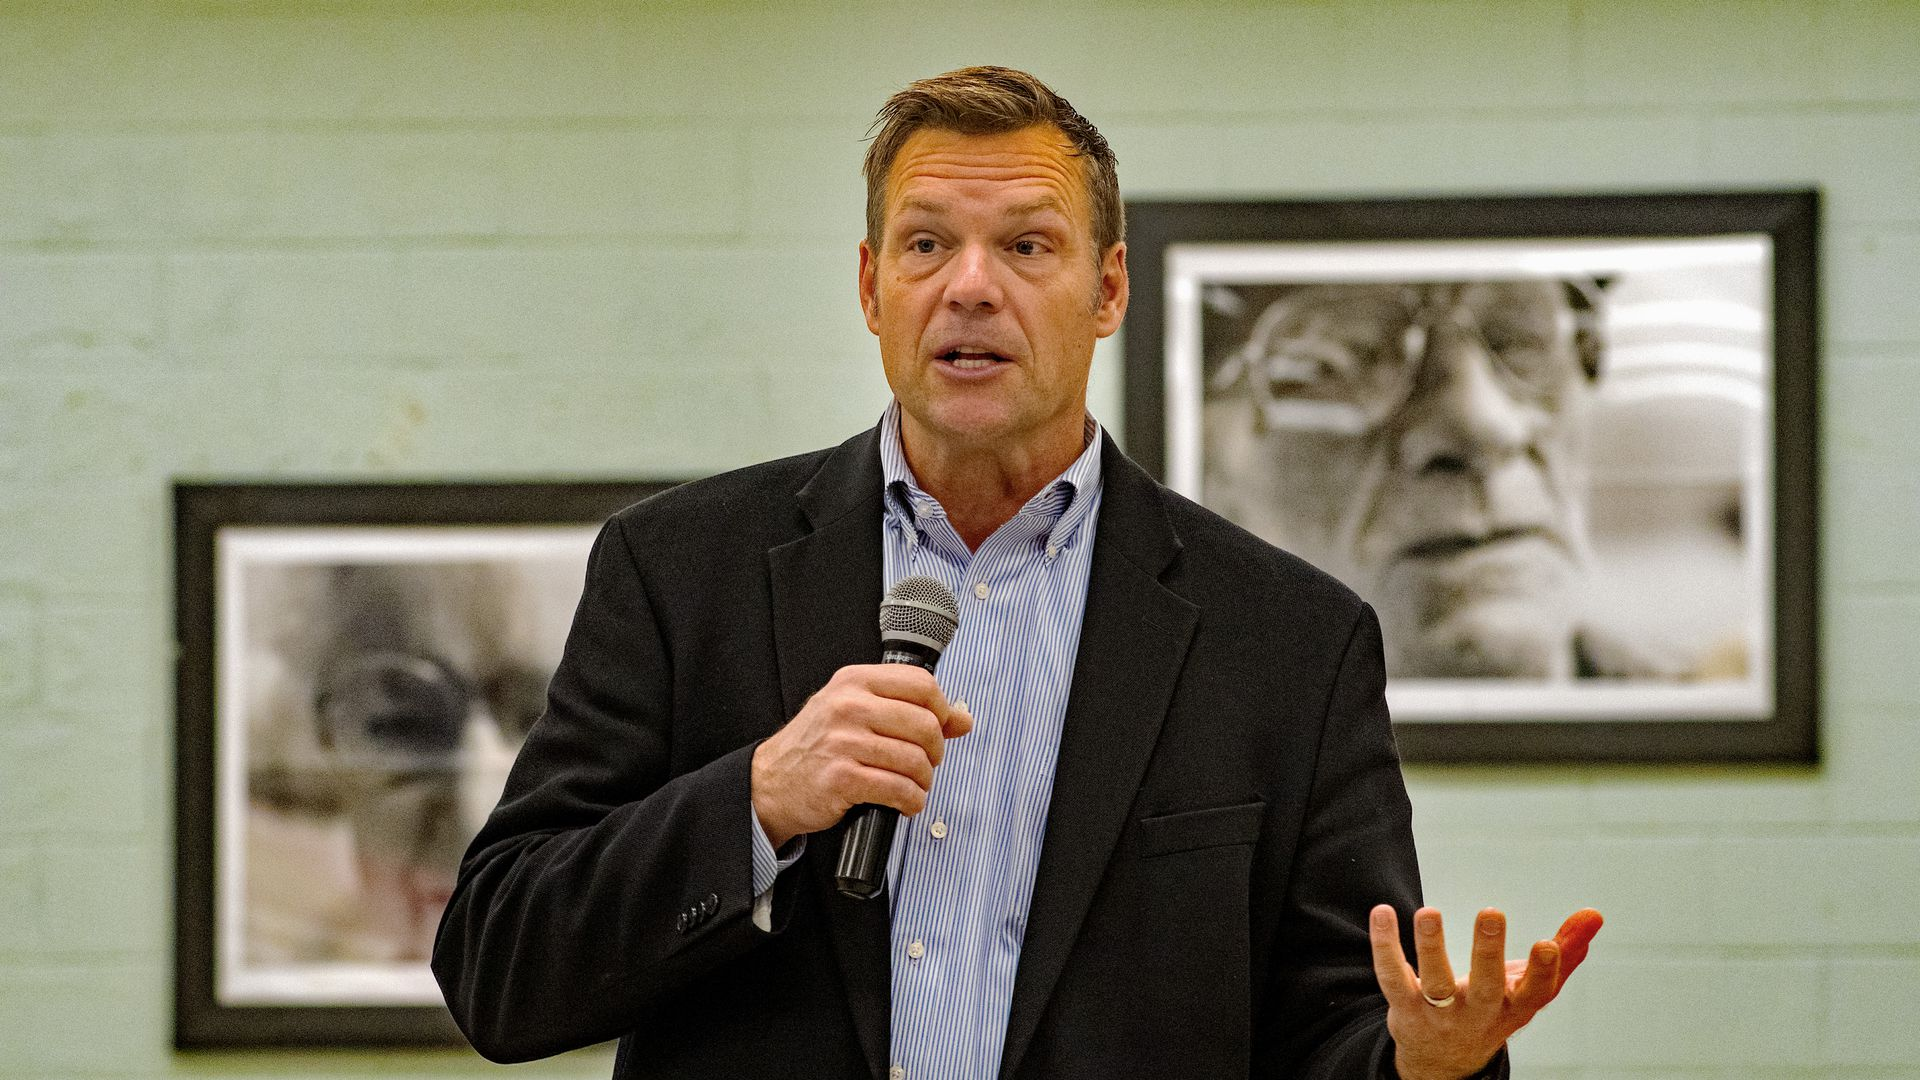 Kansas Republican gubernatorial candidate Kris Kobach. Photo: Mark Reinstein/Corbis via Getty Images